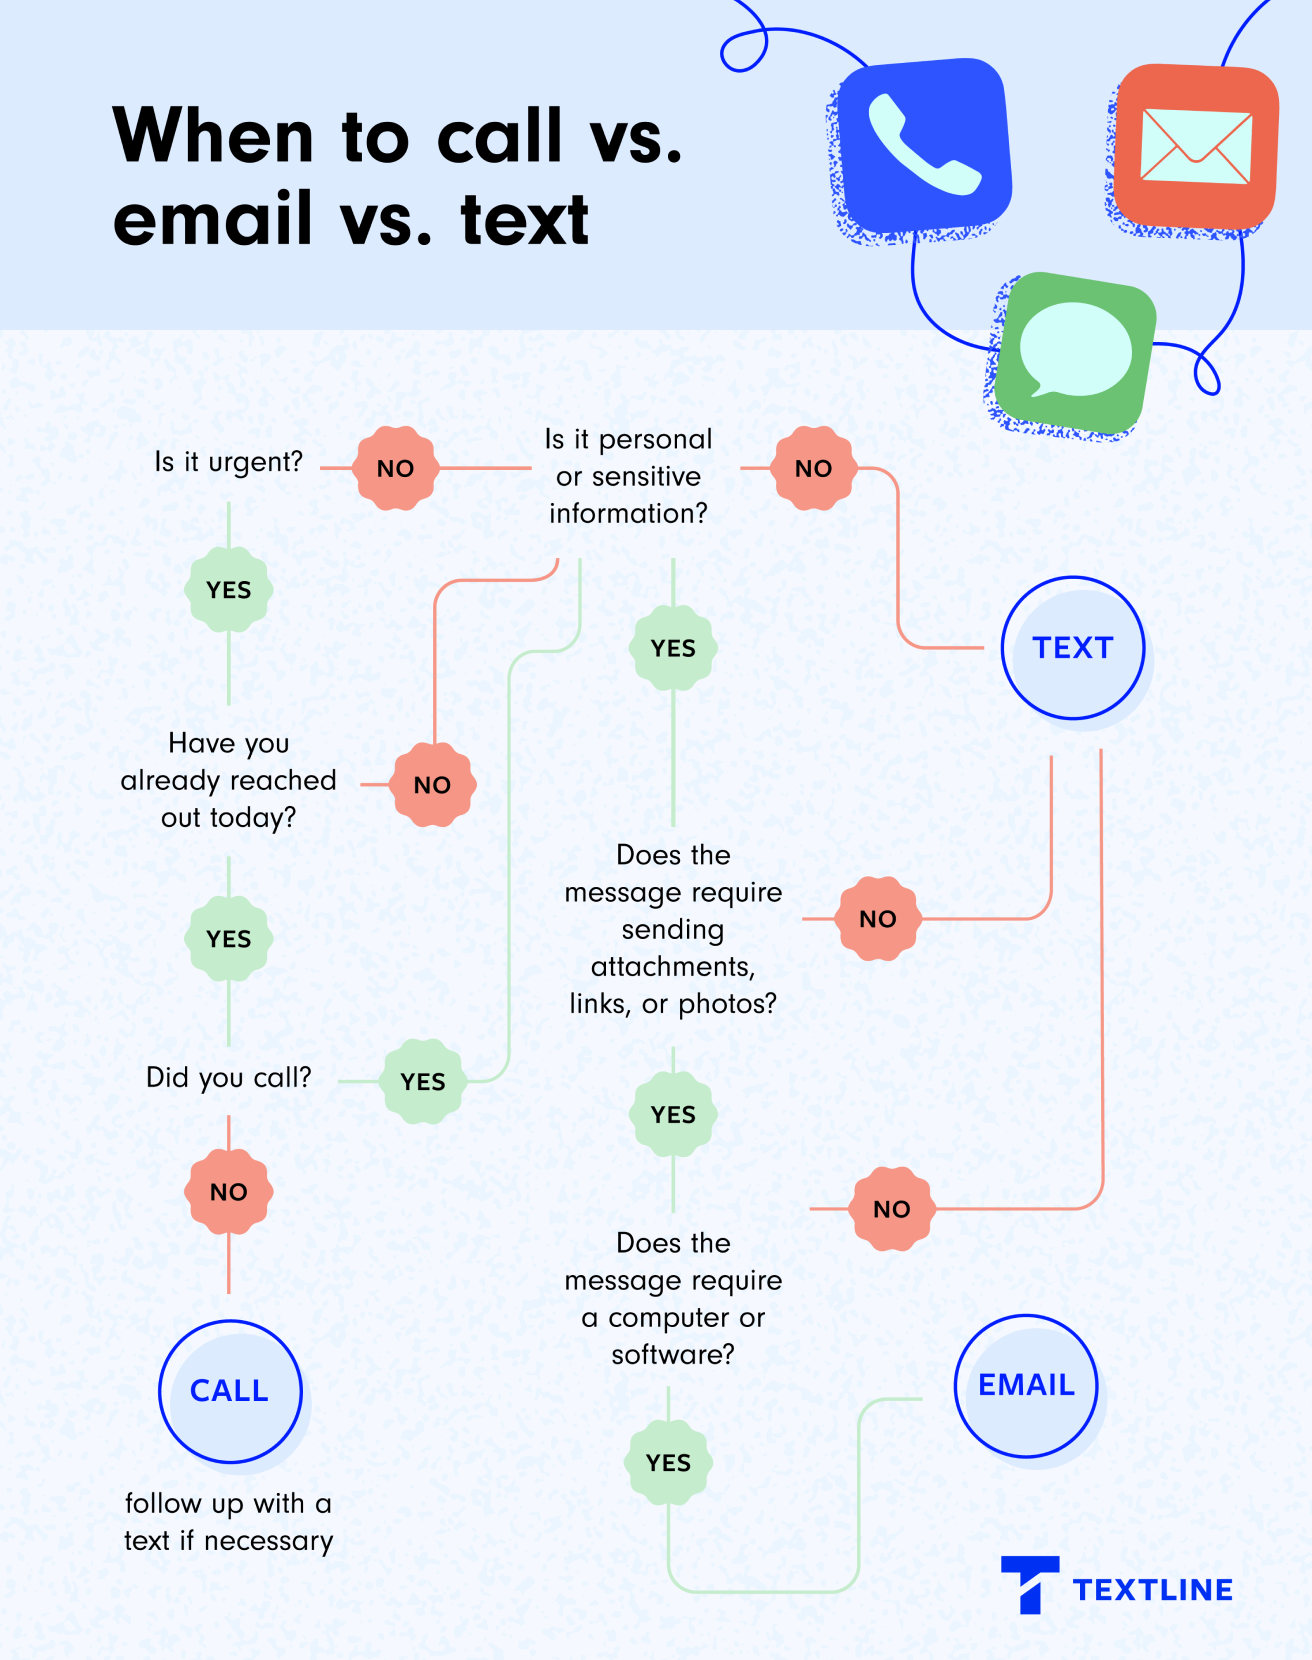 Flowchart showing when to call vs. email vs. text